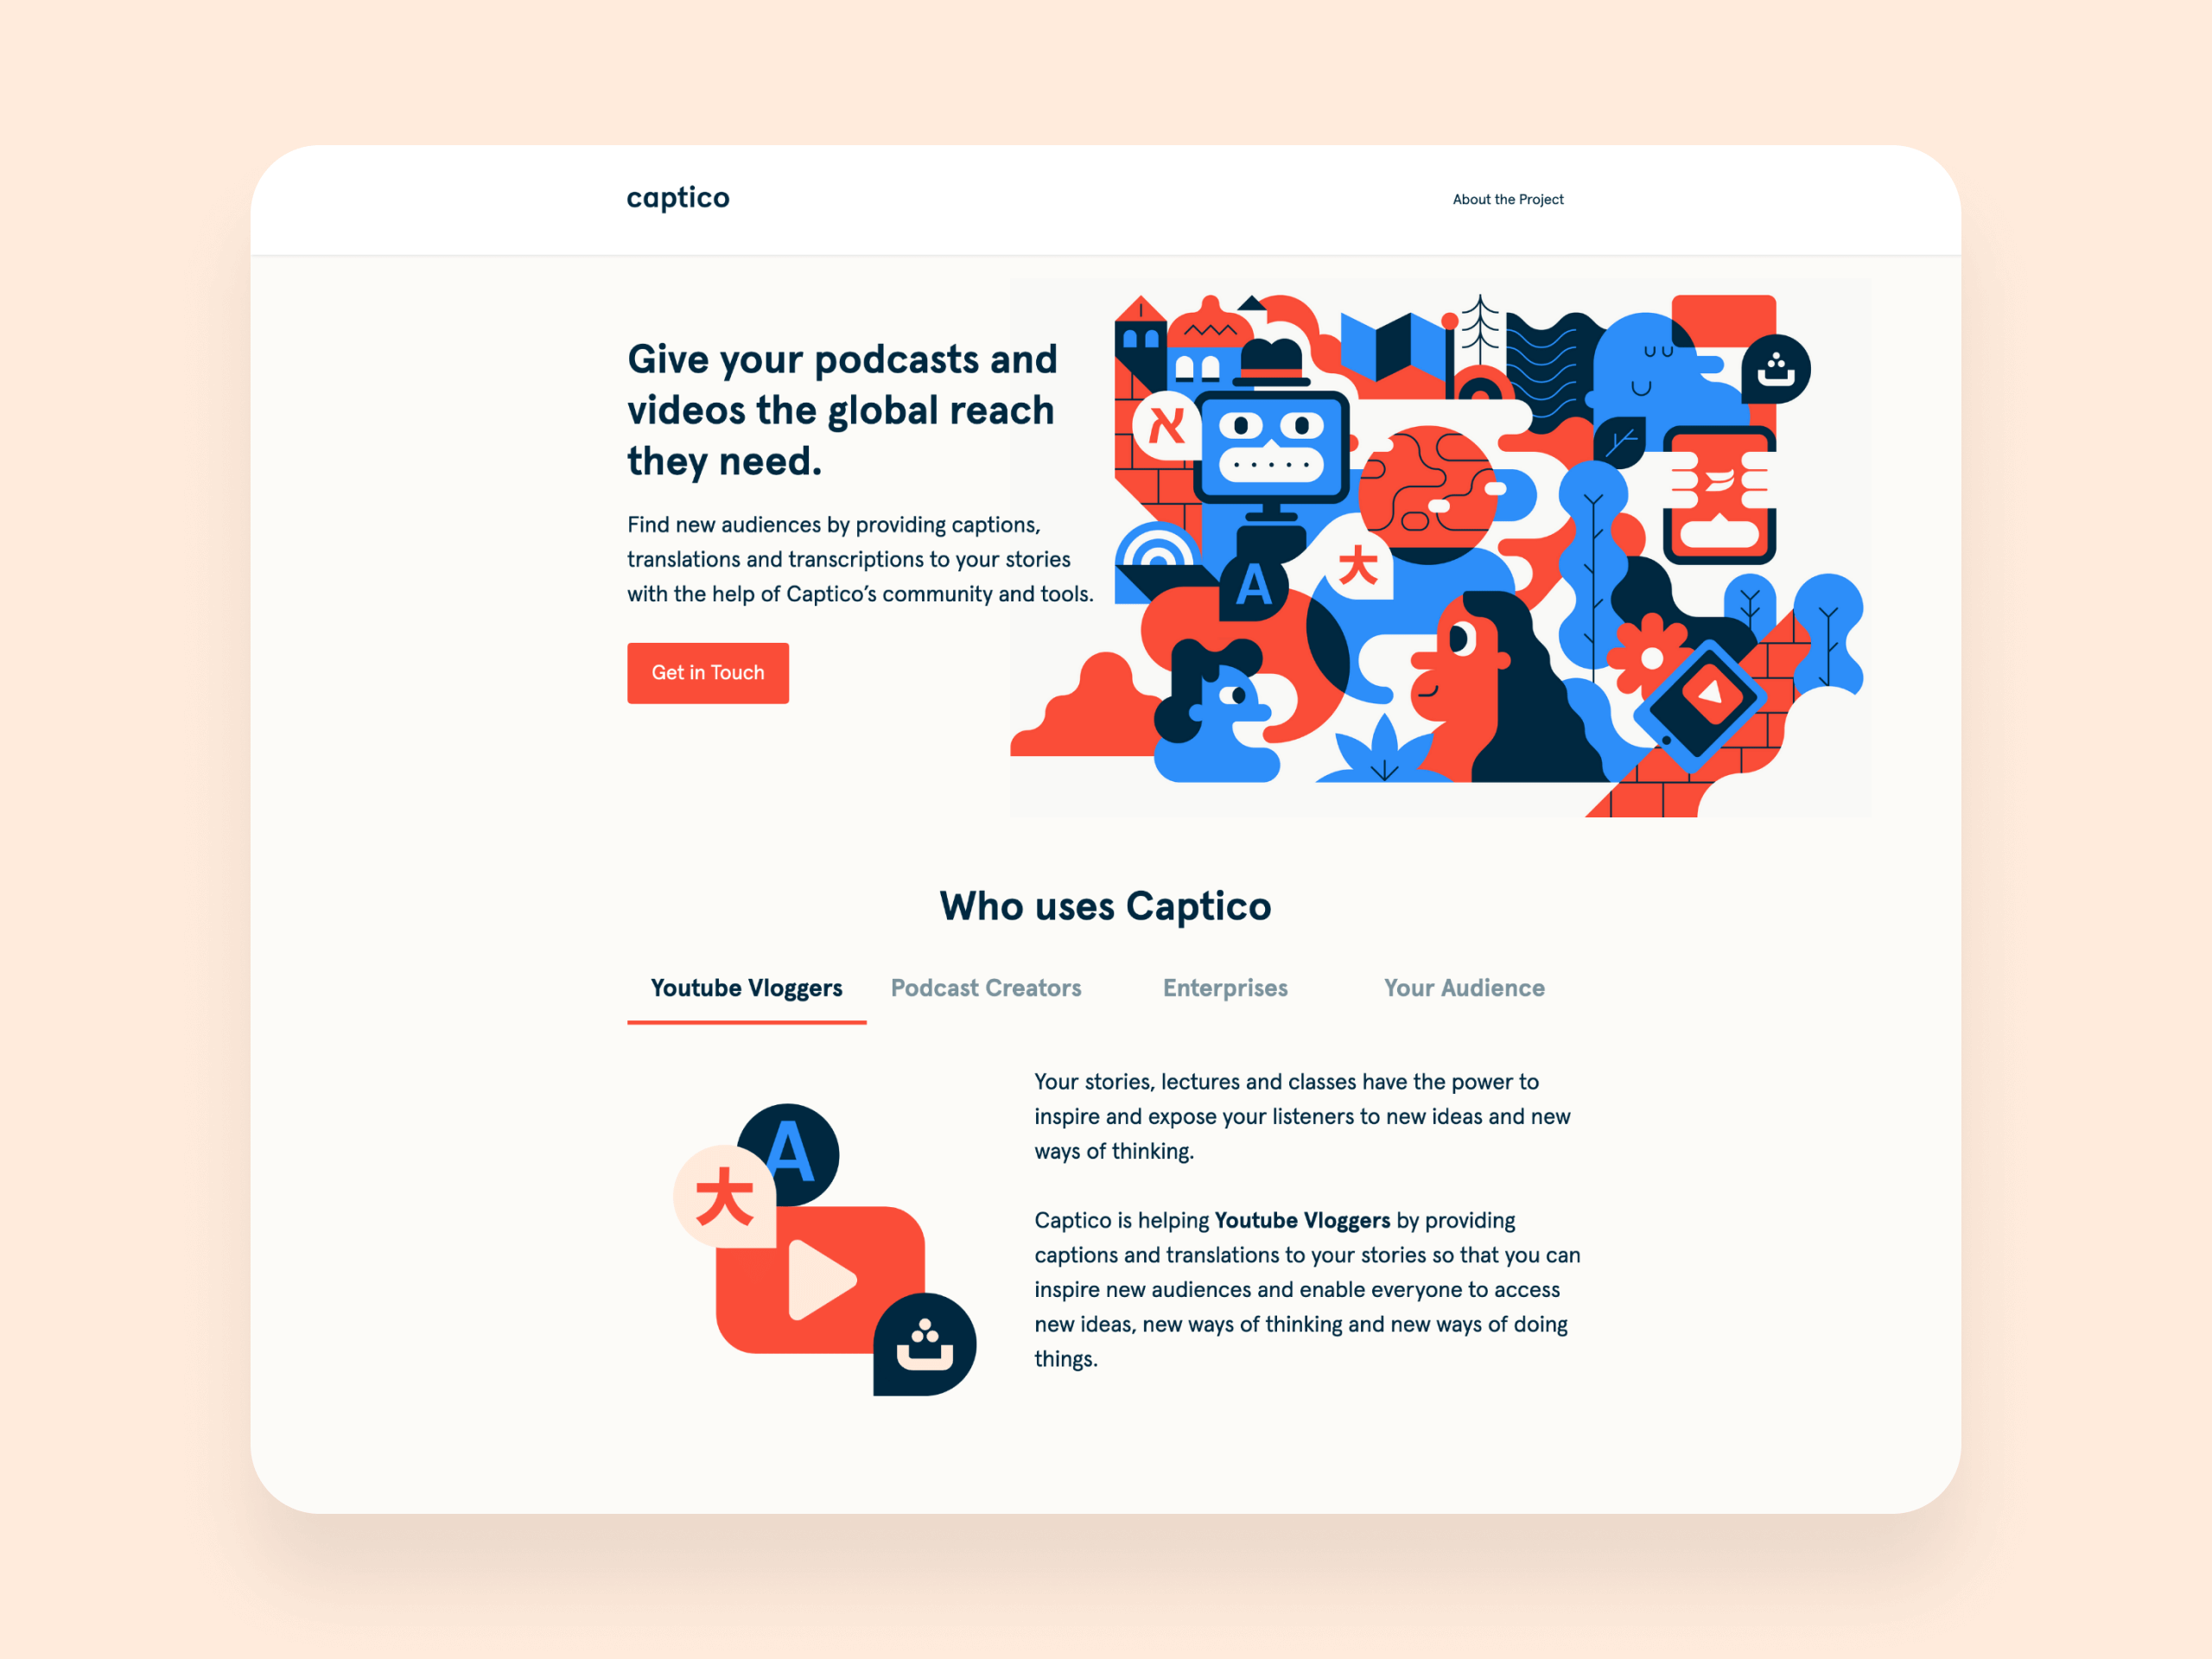 User interface (UI) for Captico's landing page.